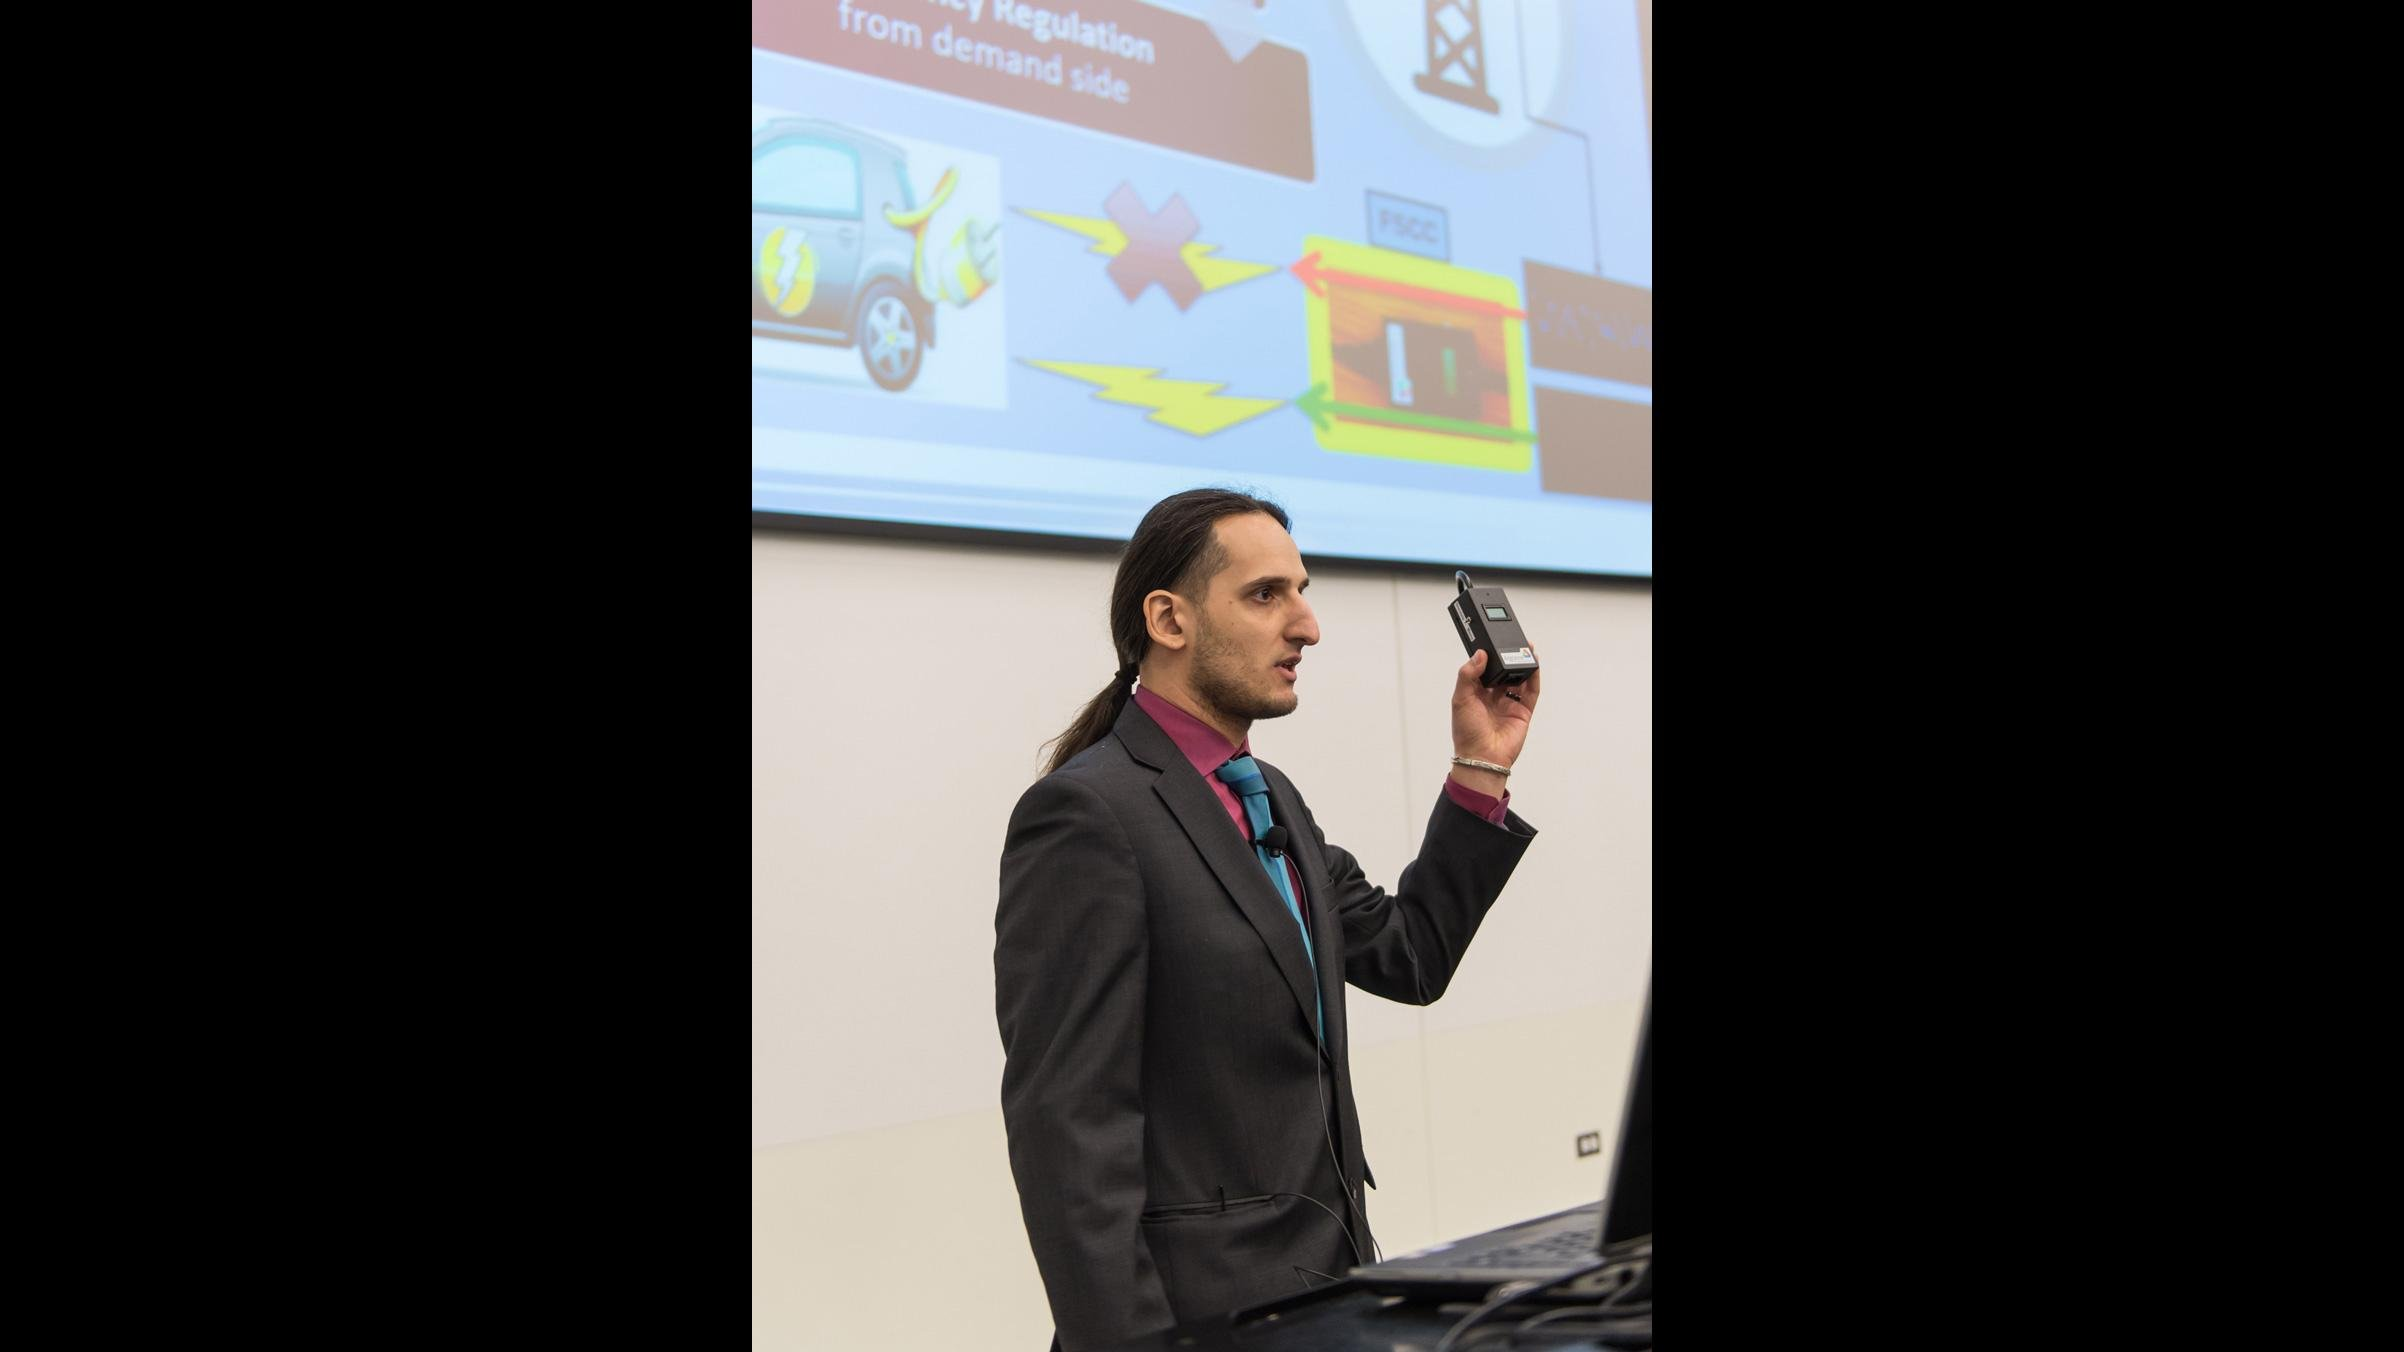 Diego Fazi from Argonne National Laboratory discusses technology at a laboratory pitch competition. He will moderate a pitch competition for innovations arising from work at Argonne on Sept. 14. (Courtesy Argonne National Laboratory)